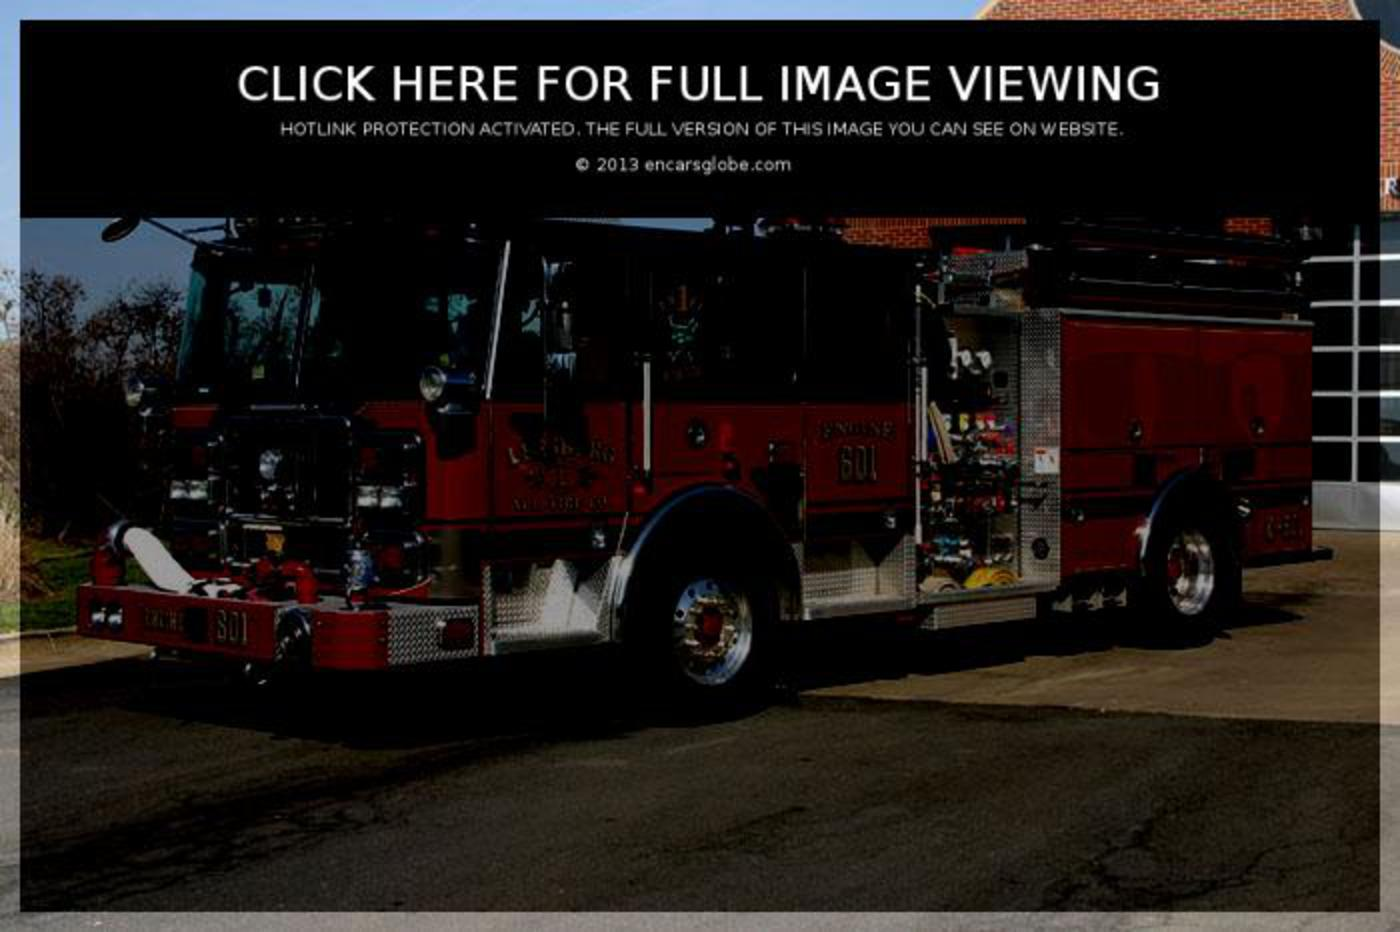 Seagrave Marauder: Photo gallery, complete information about model ...